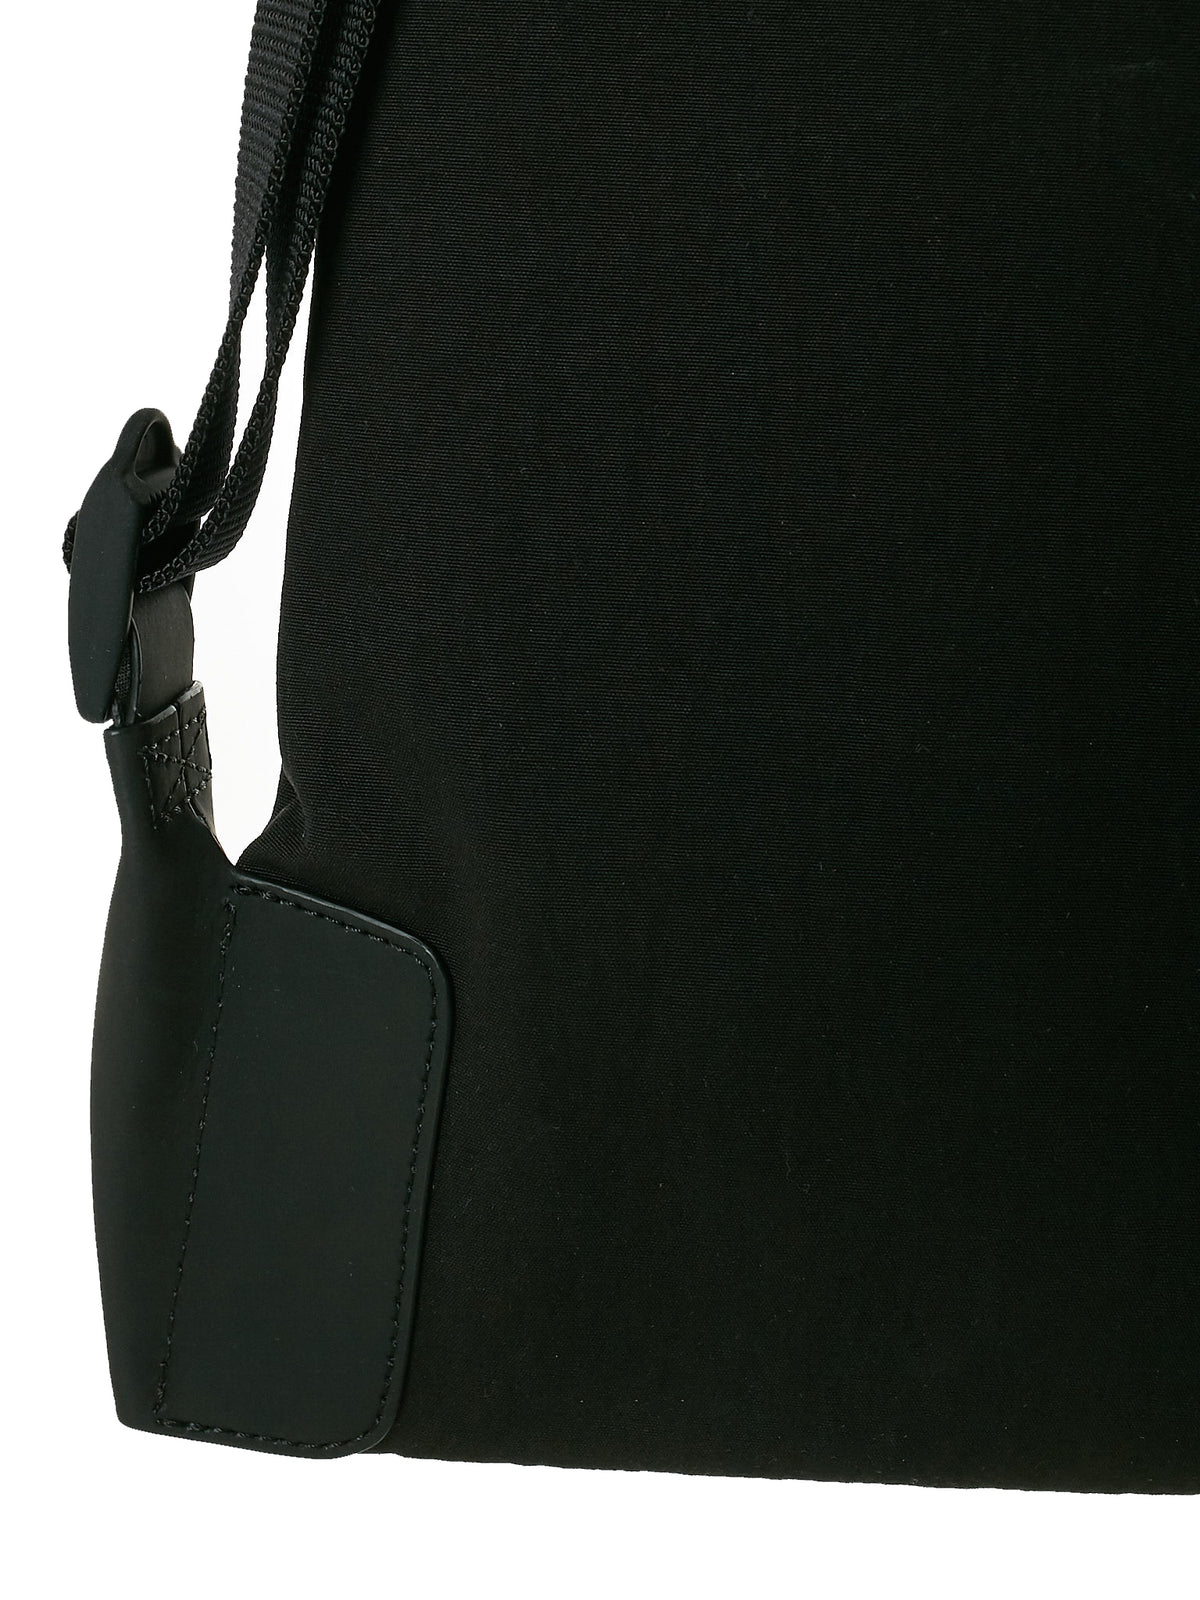 Moncler Craig Green Backpack - Hlorenzo Detail 3